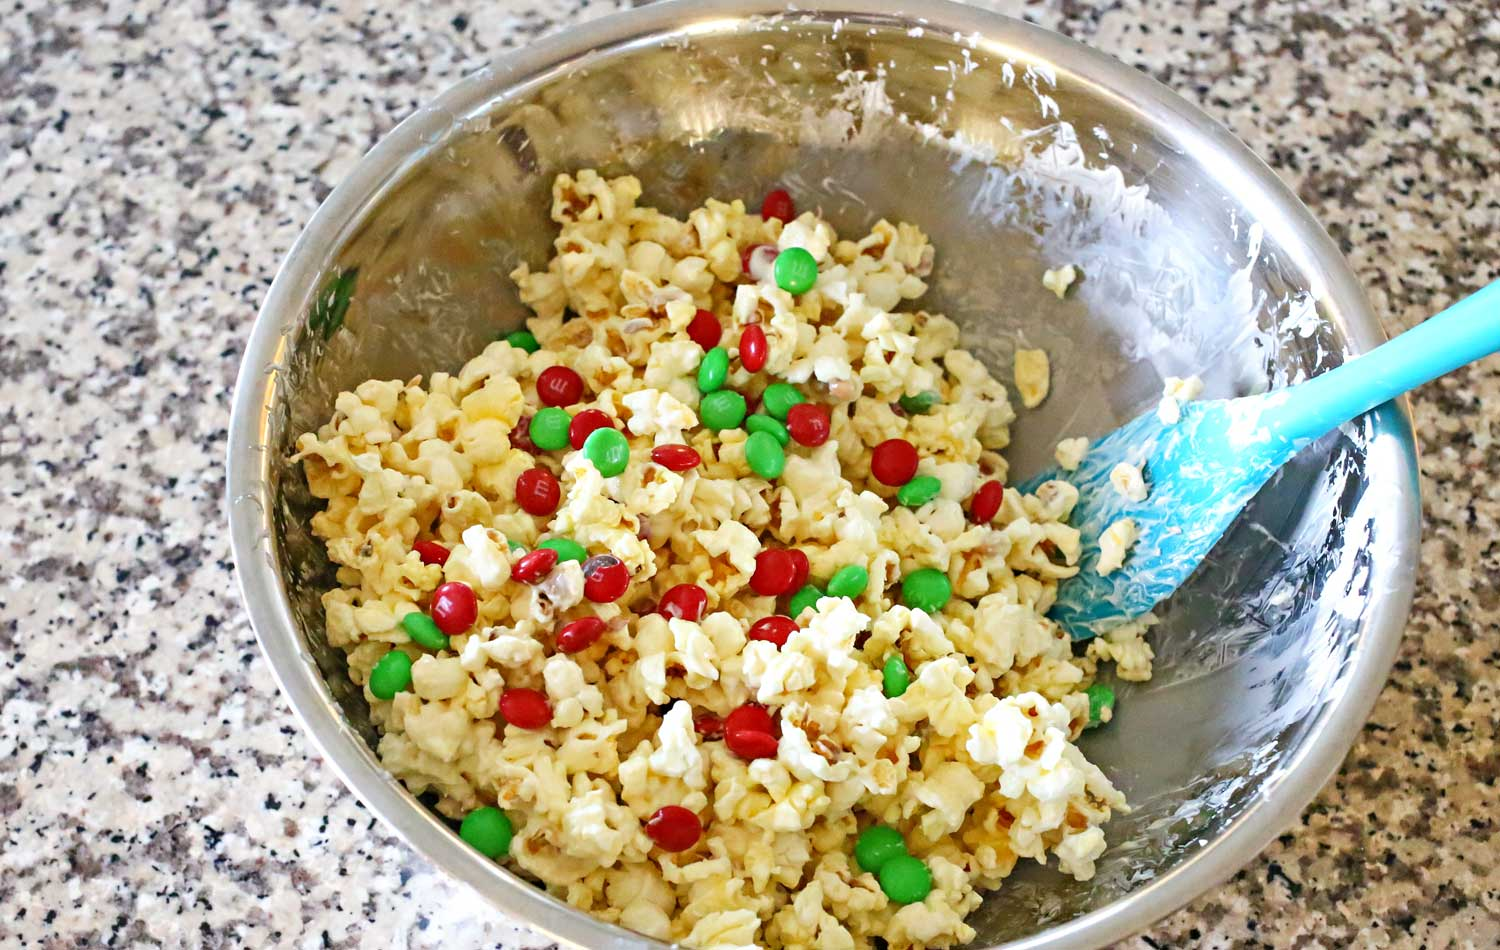 Add the popcorn to a bowl, stir in the white chocolate to coat and then add the red and green M&Ms.